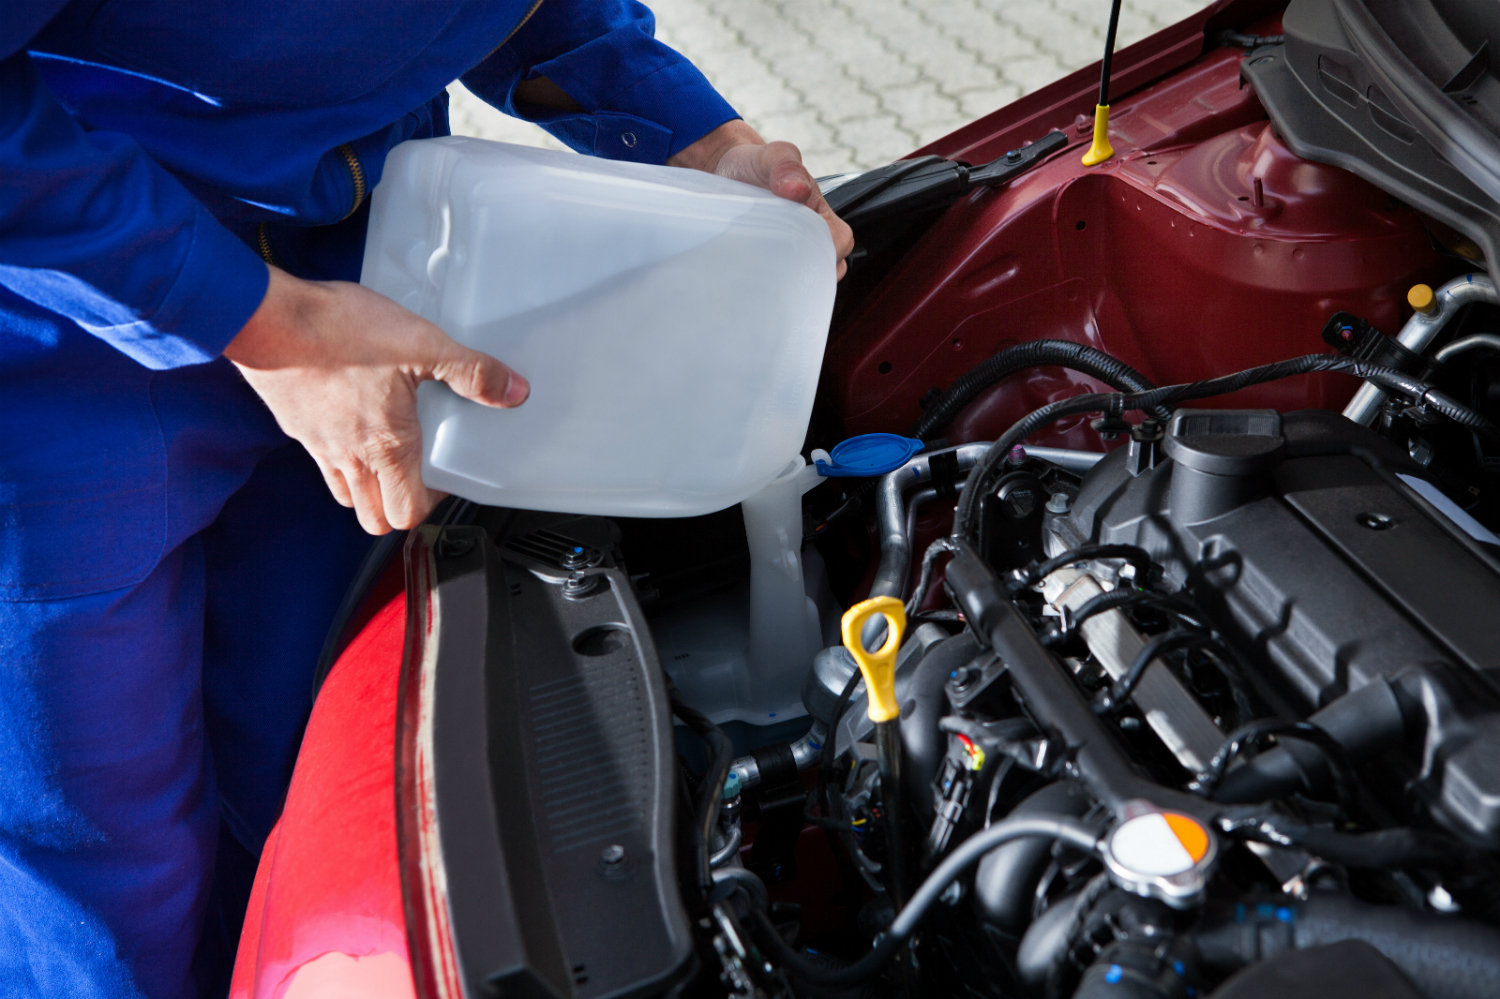 10 New Year's Car Care Resolutions